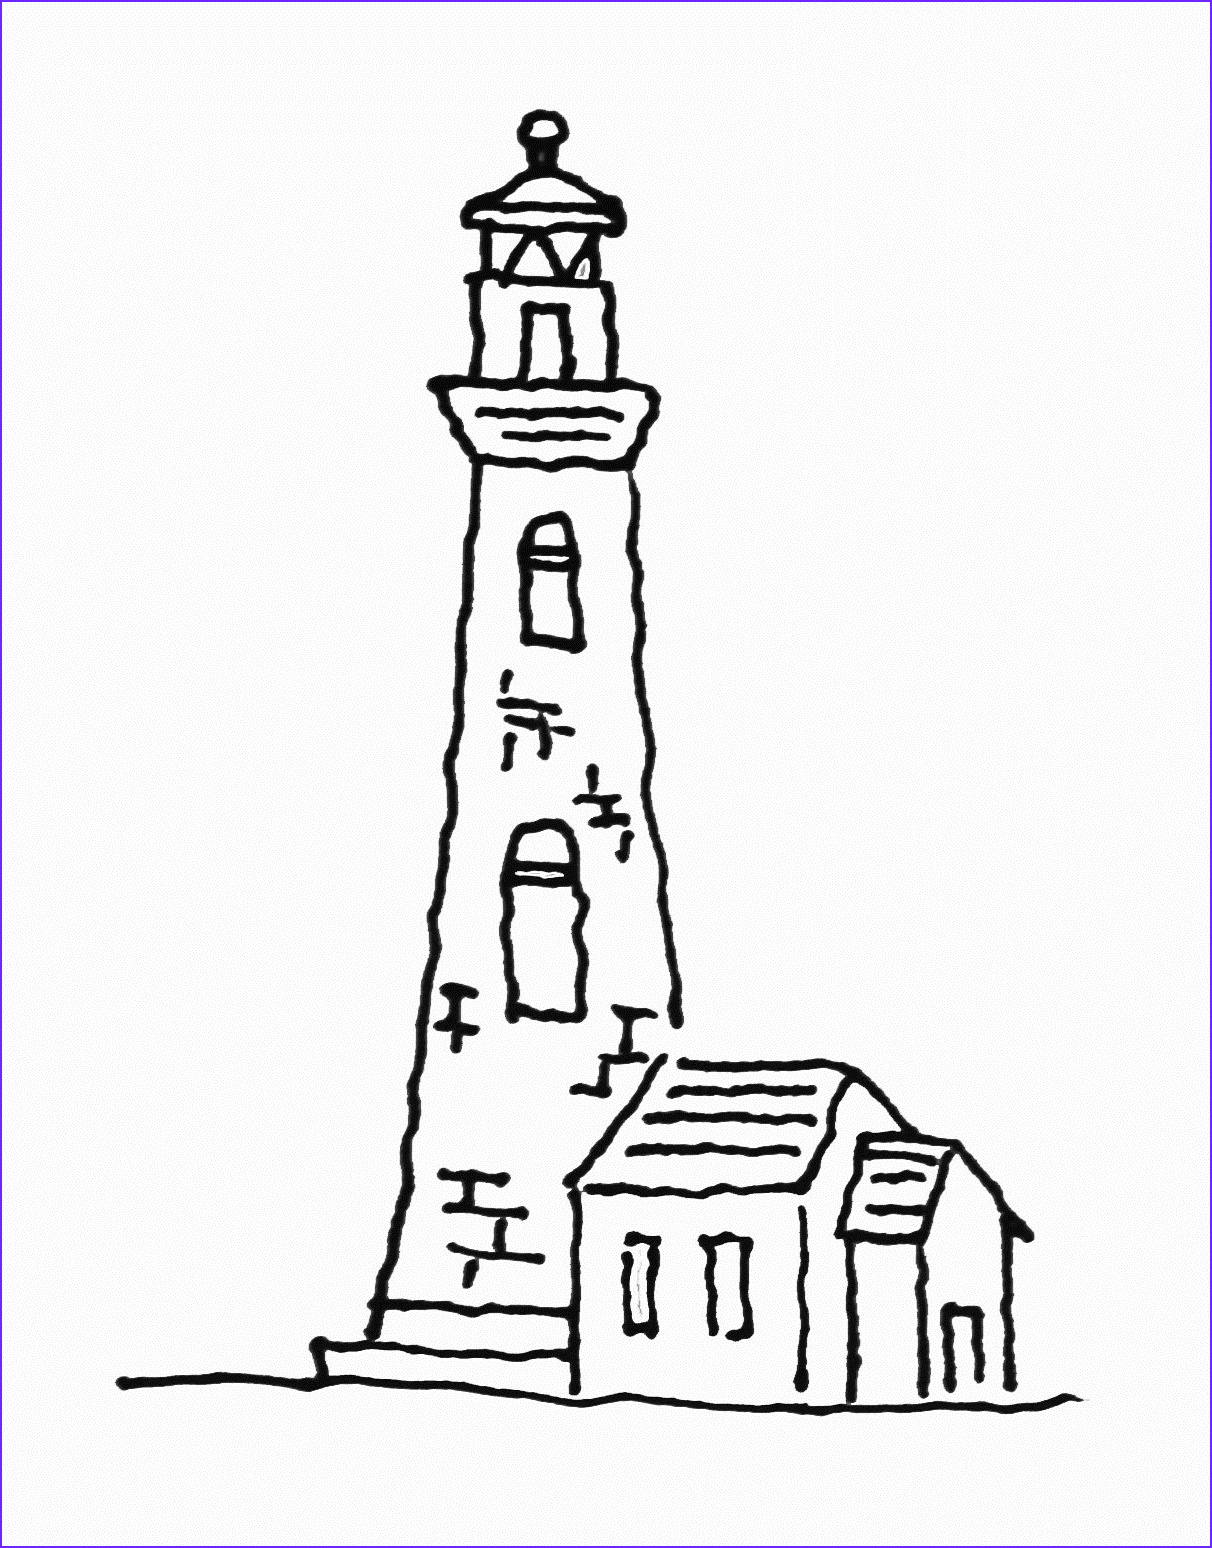 Lighthouse Coloring Pages Inspirational Collection Free Printable Lighthouse Coloring Pages for Kids